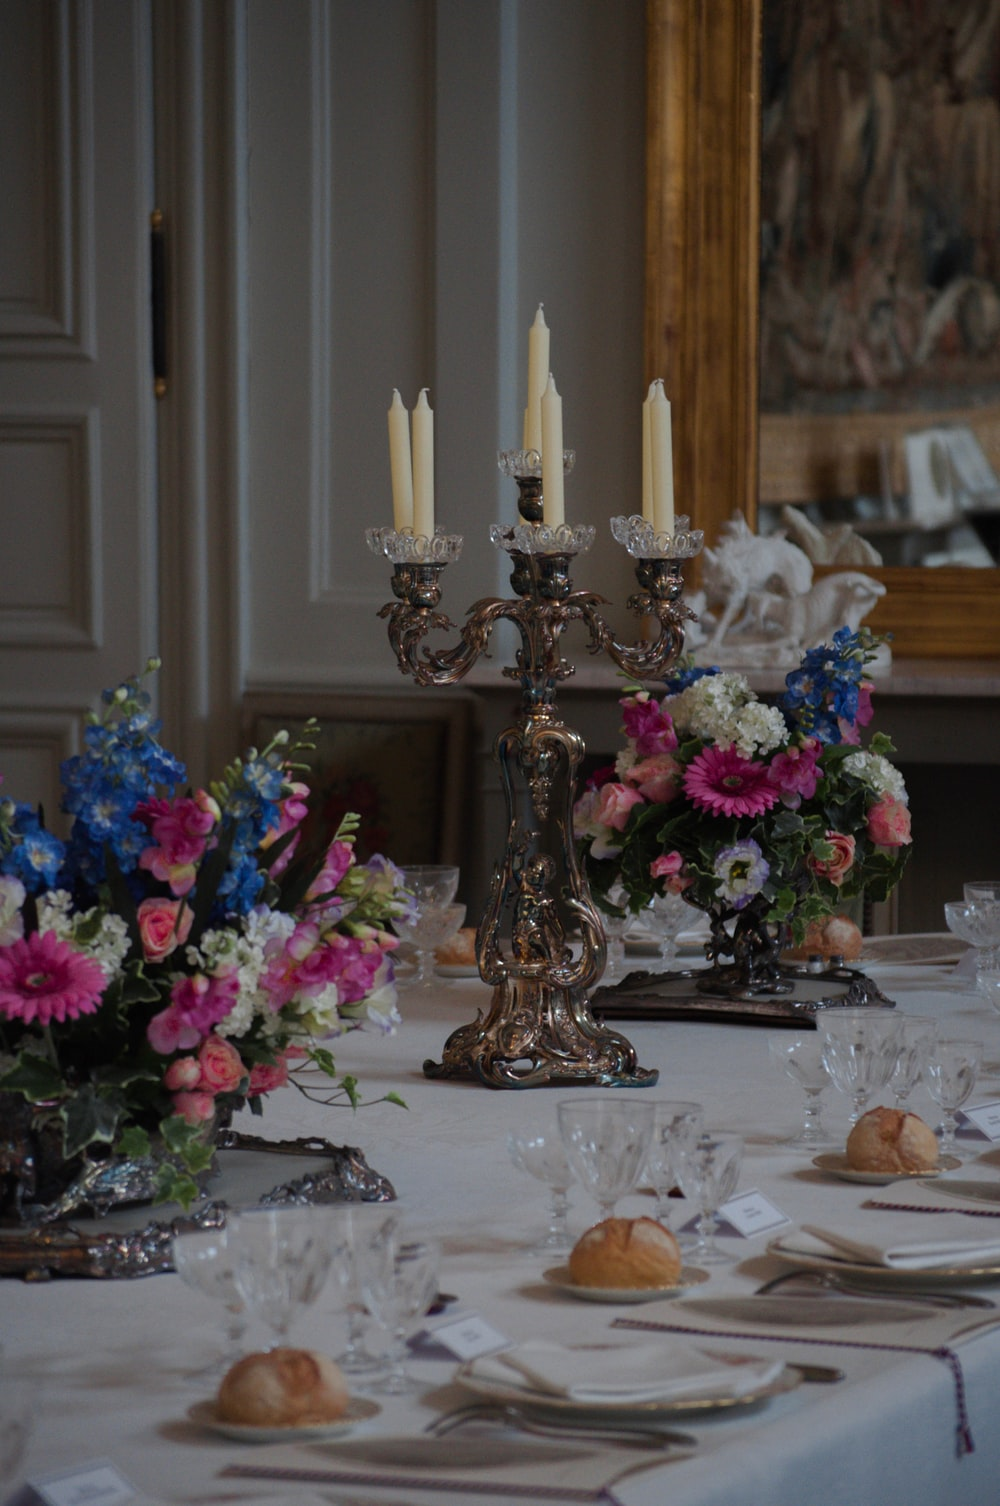 gold and white candle holder on table